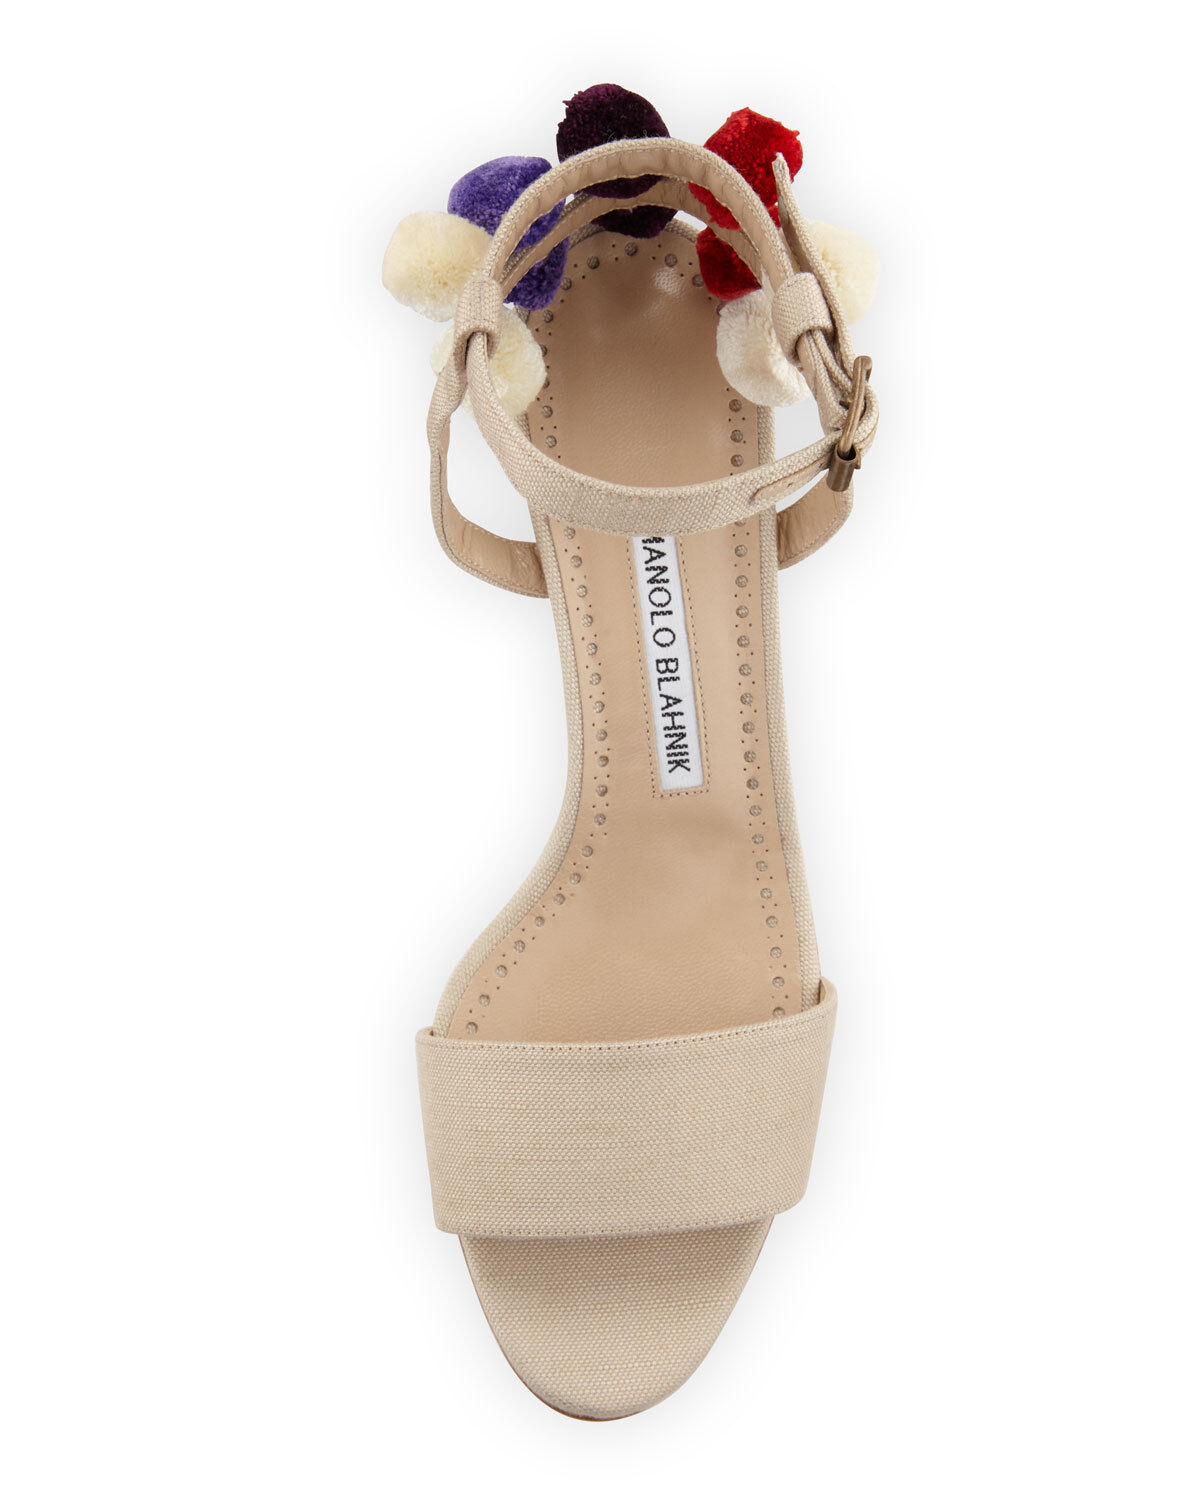 875 NEW Manolo Blahnik Pompom Canvas 50 Sandals Nude Nude Nude Beige Strappy chaussures 41.5 9118bf